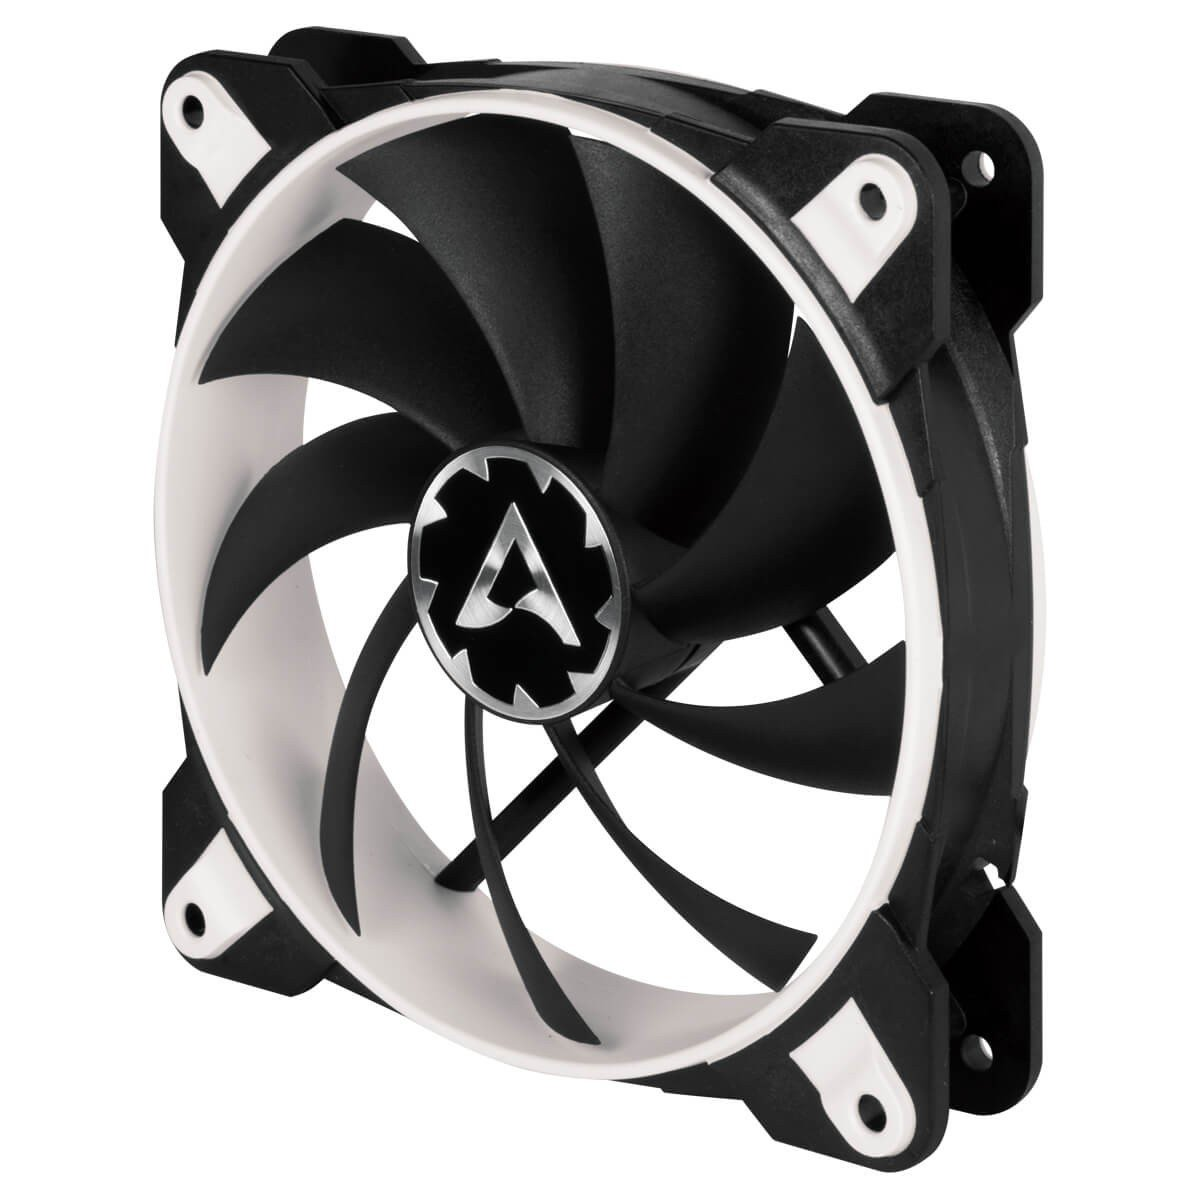 Fan Cooler Arctic Bionix F120-120 Mm Gaming With Pwm Pst Wit